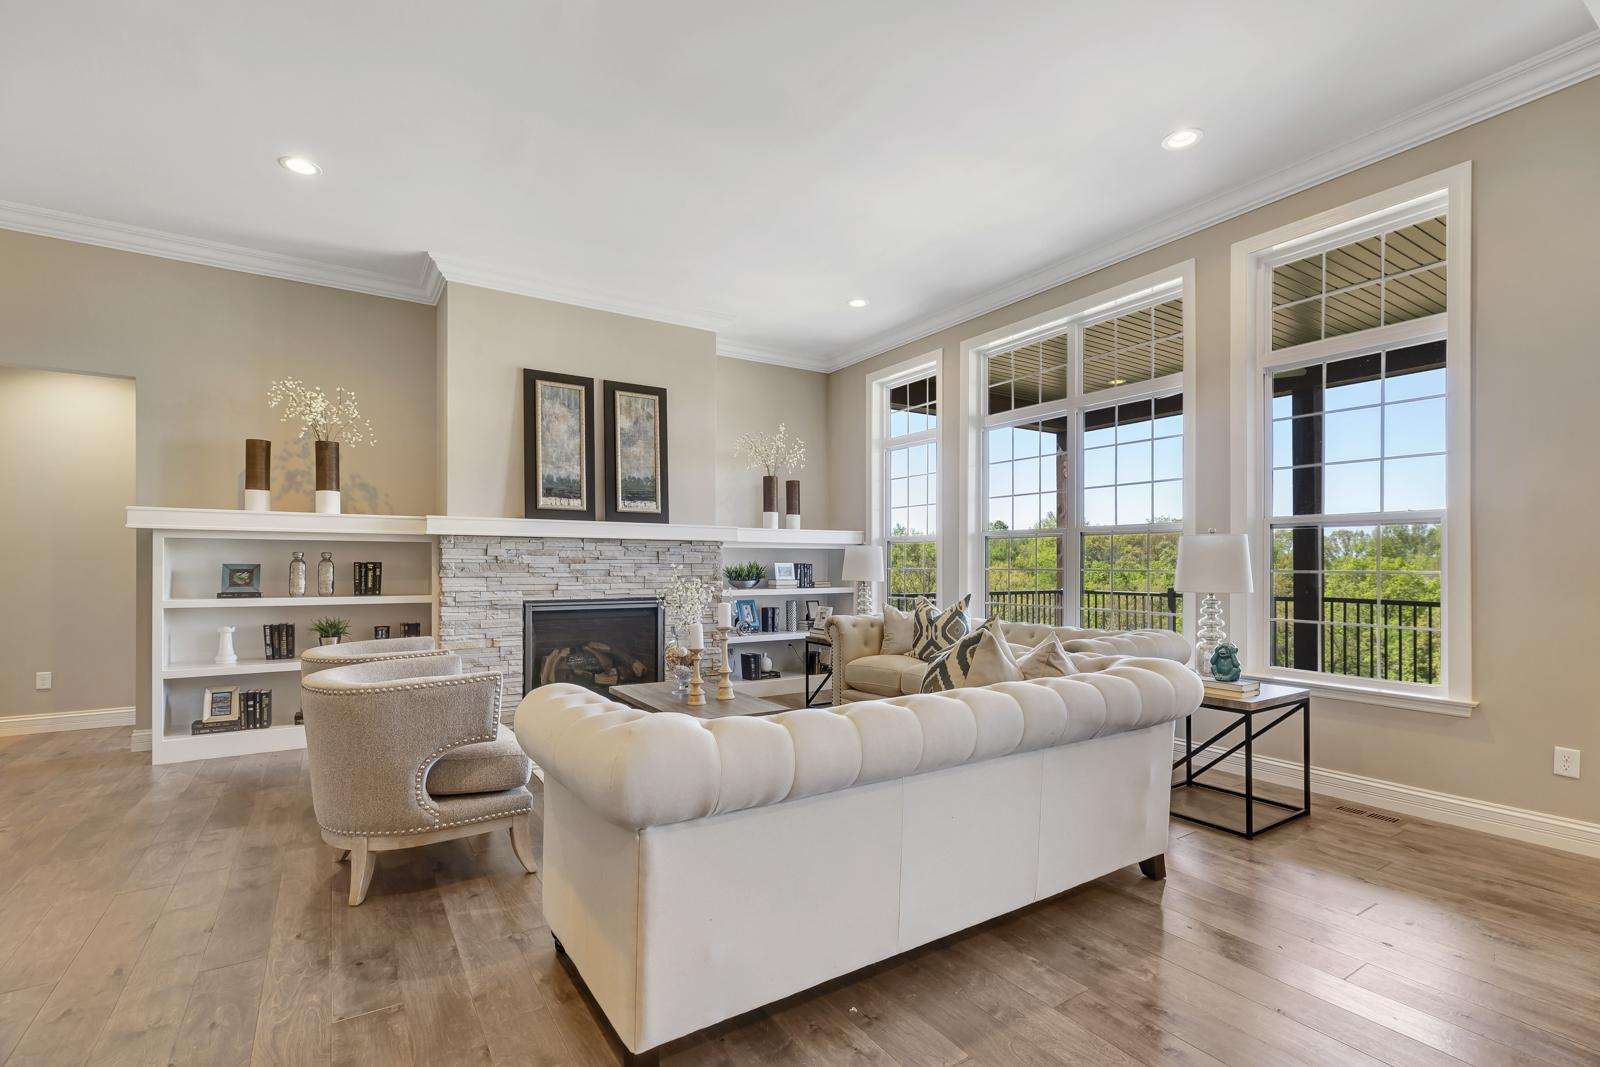 Living Area featured in the Lasalle Side Entry By McKelvey Homes in St. Louis, MO